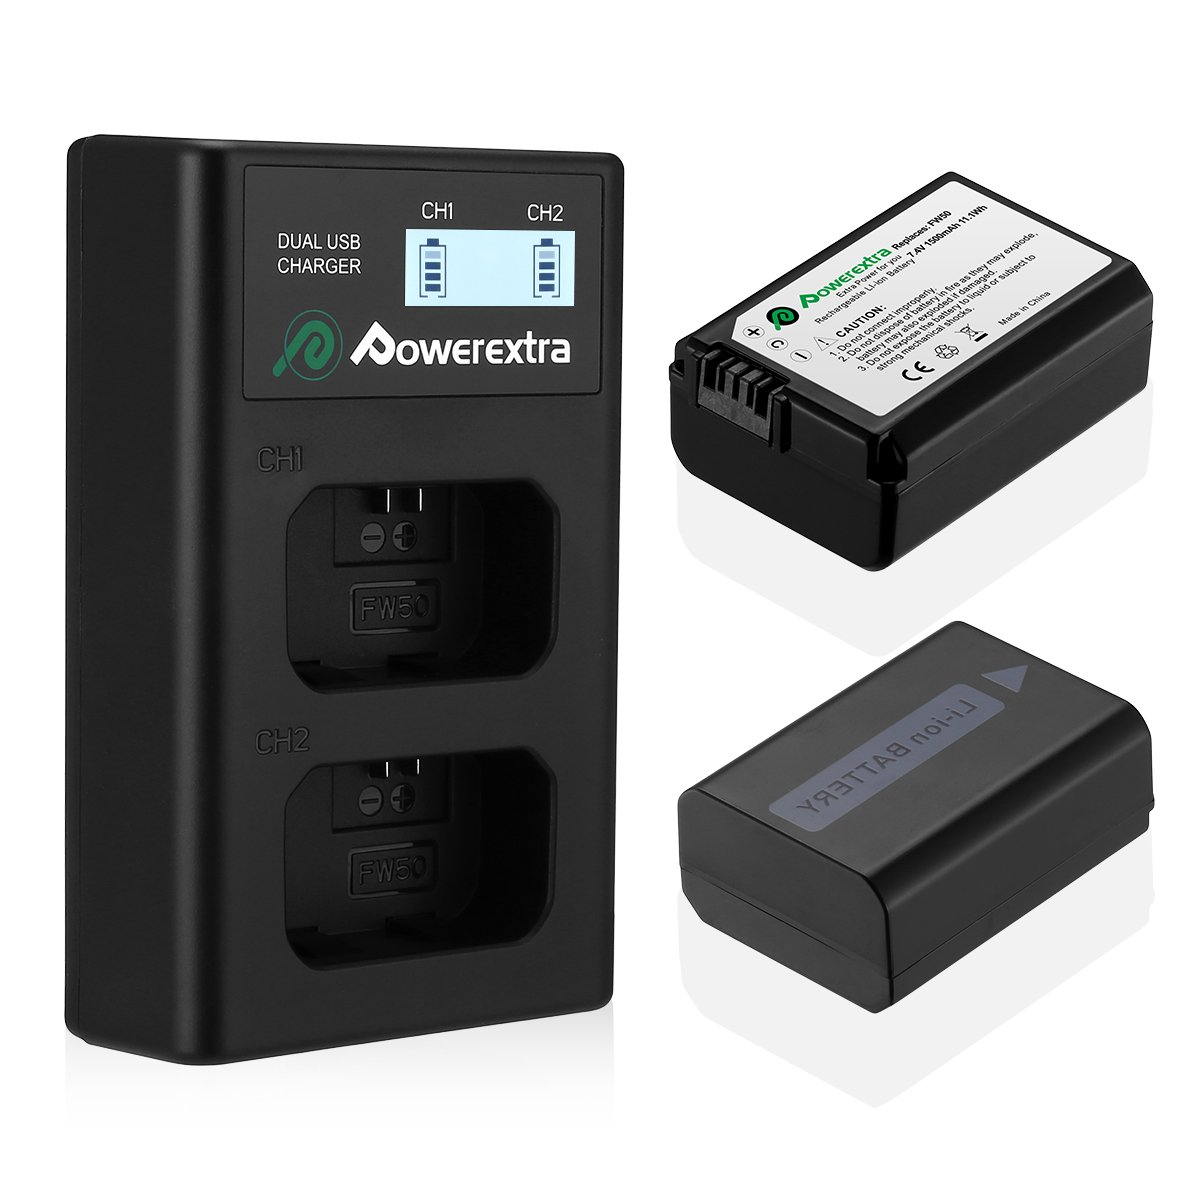 Powerextra 2 Pack Replacement Sony NP-FW50 Battery & Smart LCD Display Dual Channel Charger Compatible for Sony Alpha a6500, a6300, a6000, a7s, a7, a7s ii, a7s, a5100, a5000, a7r, a7 ii Camera by Powerextra